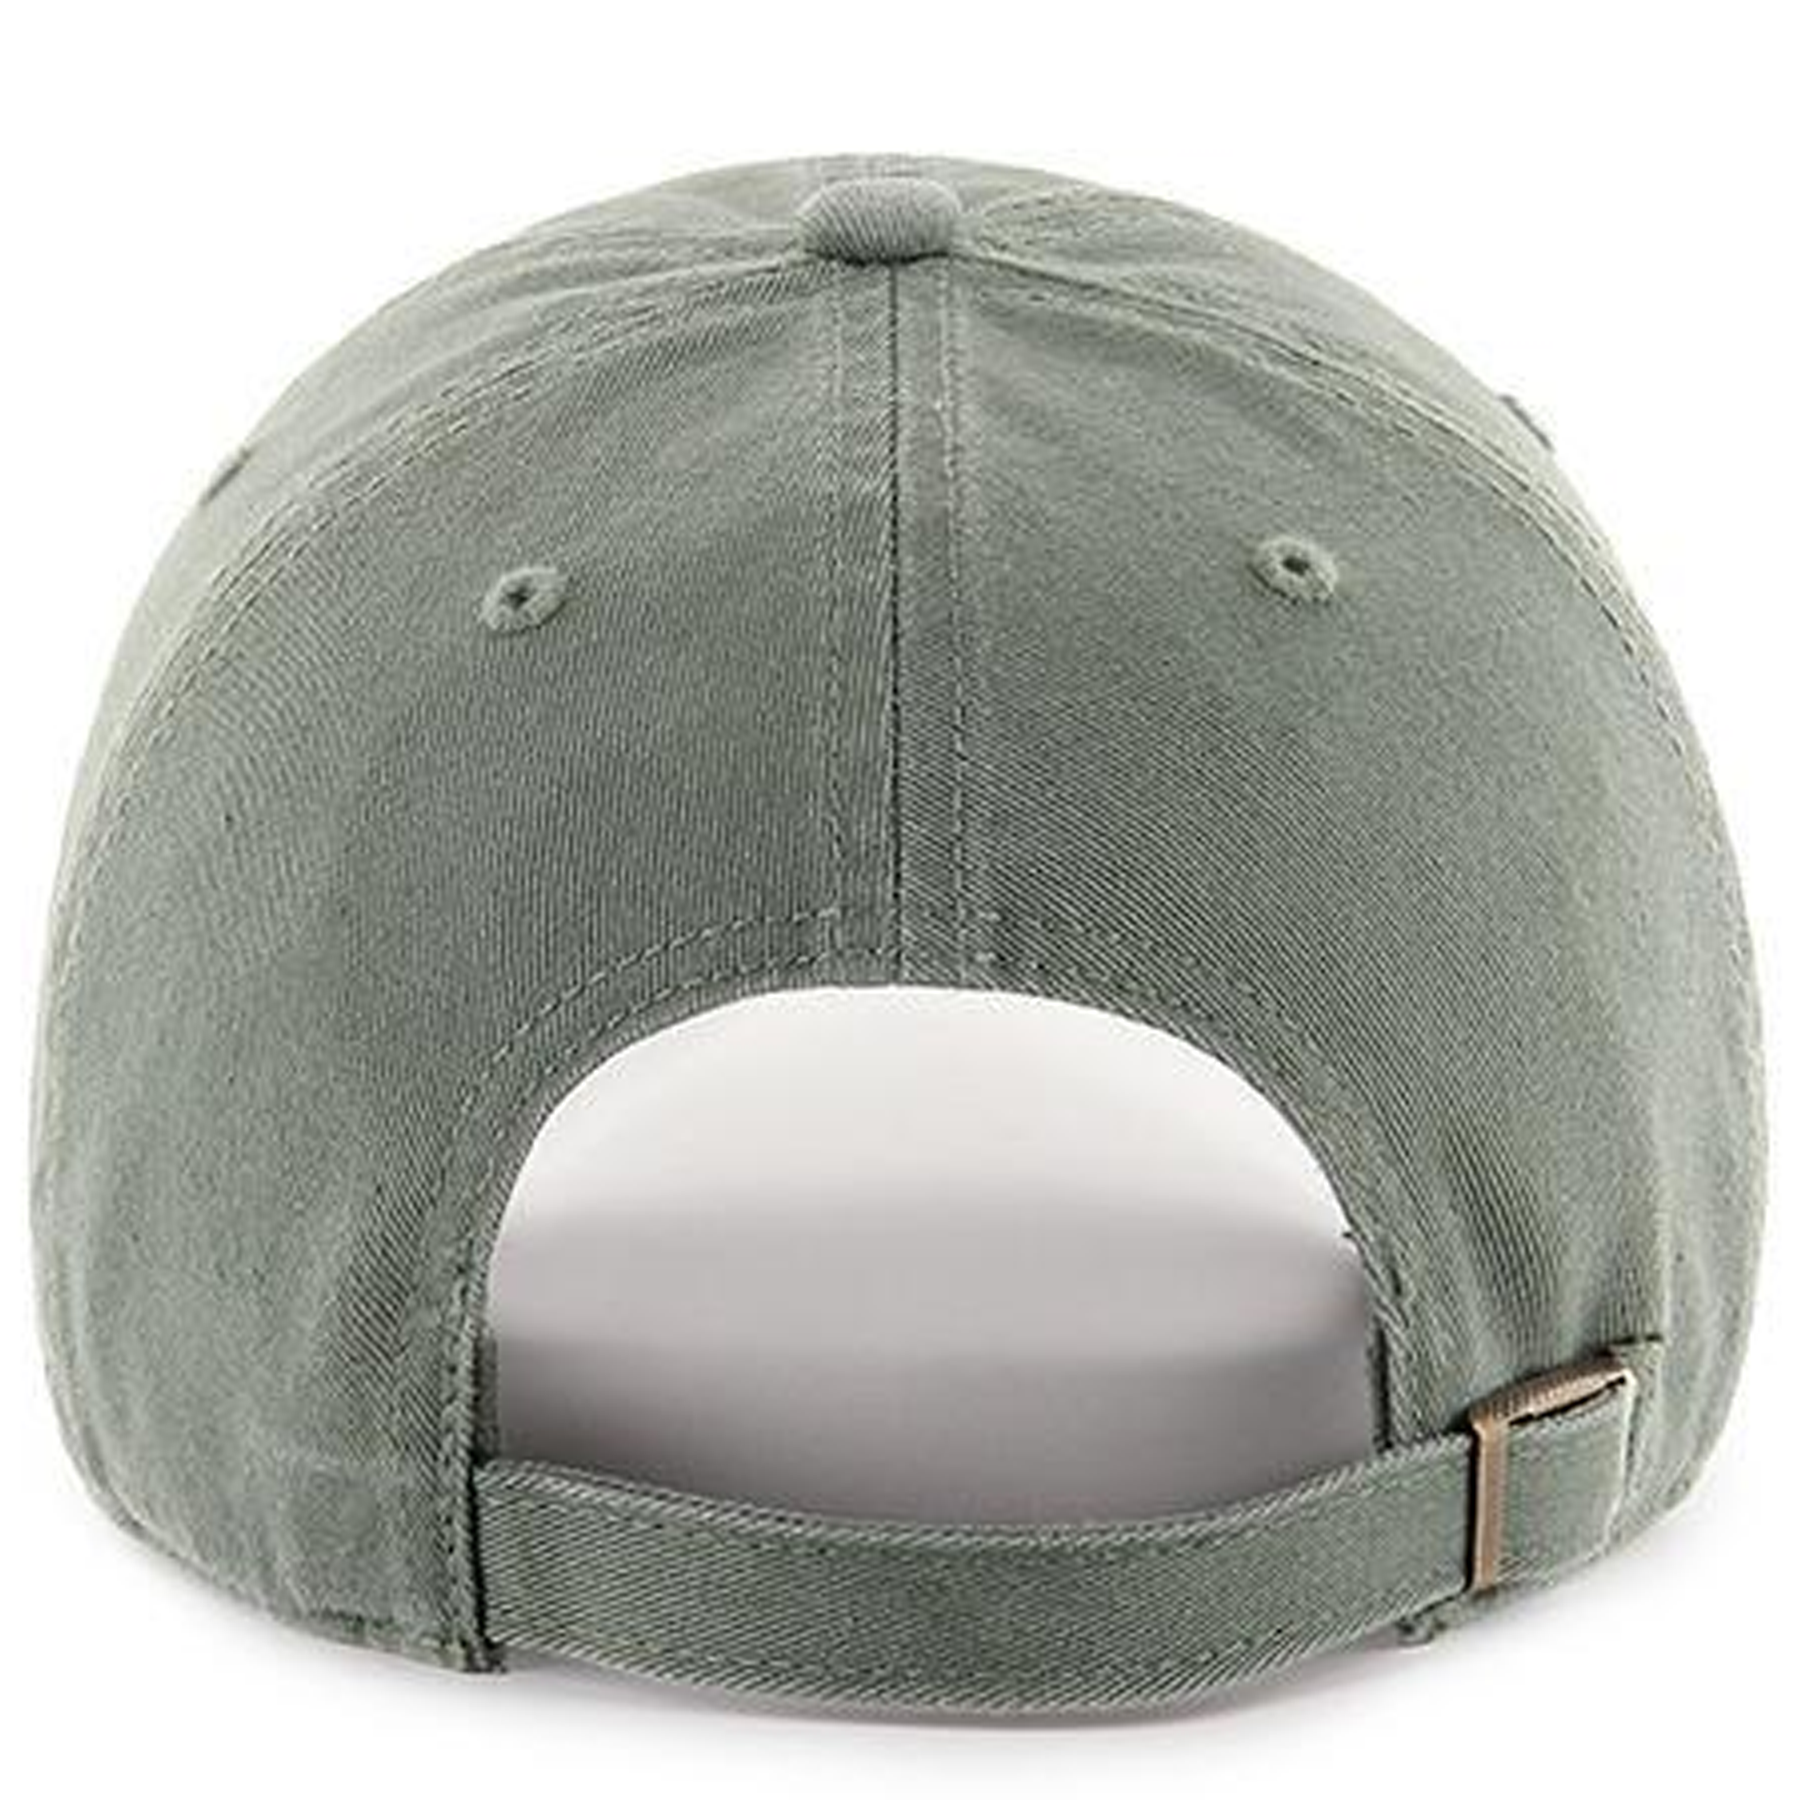 promo code 91d1a 259db australia the back of the new york mets olive womens dad hat is an olive  green